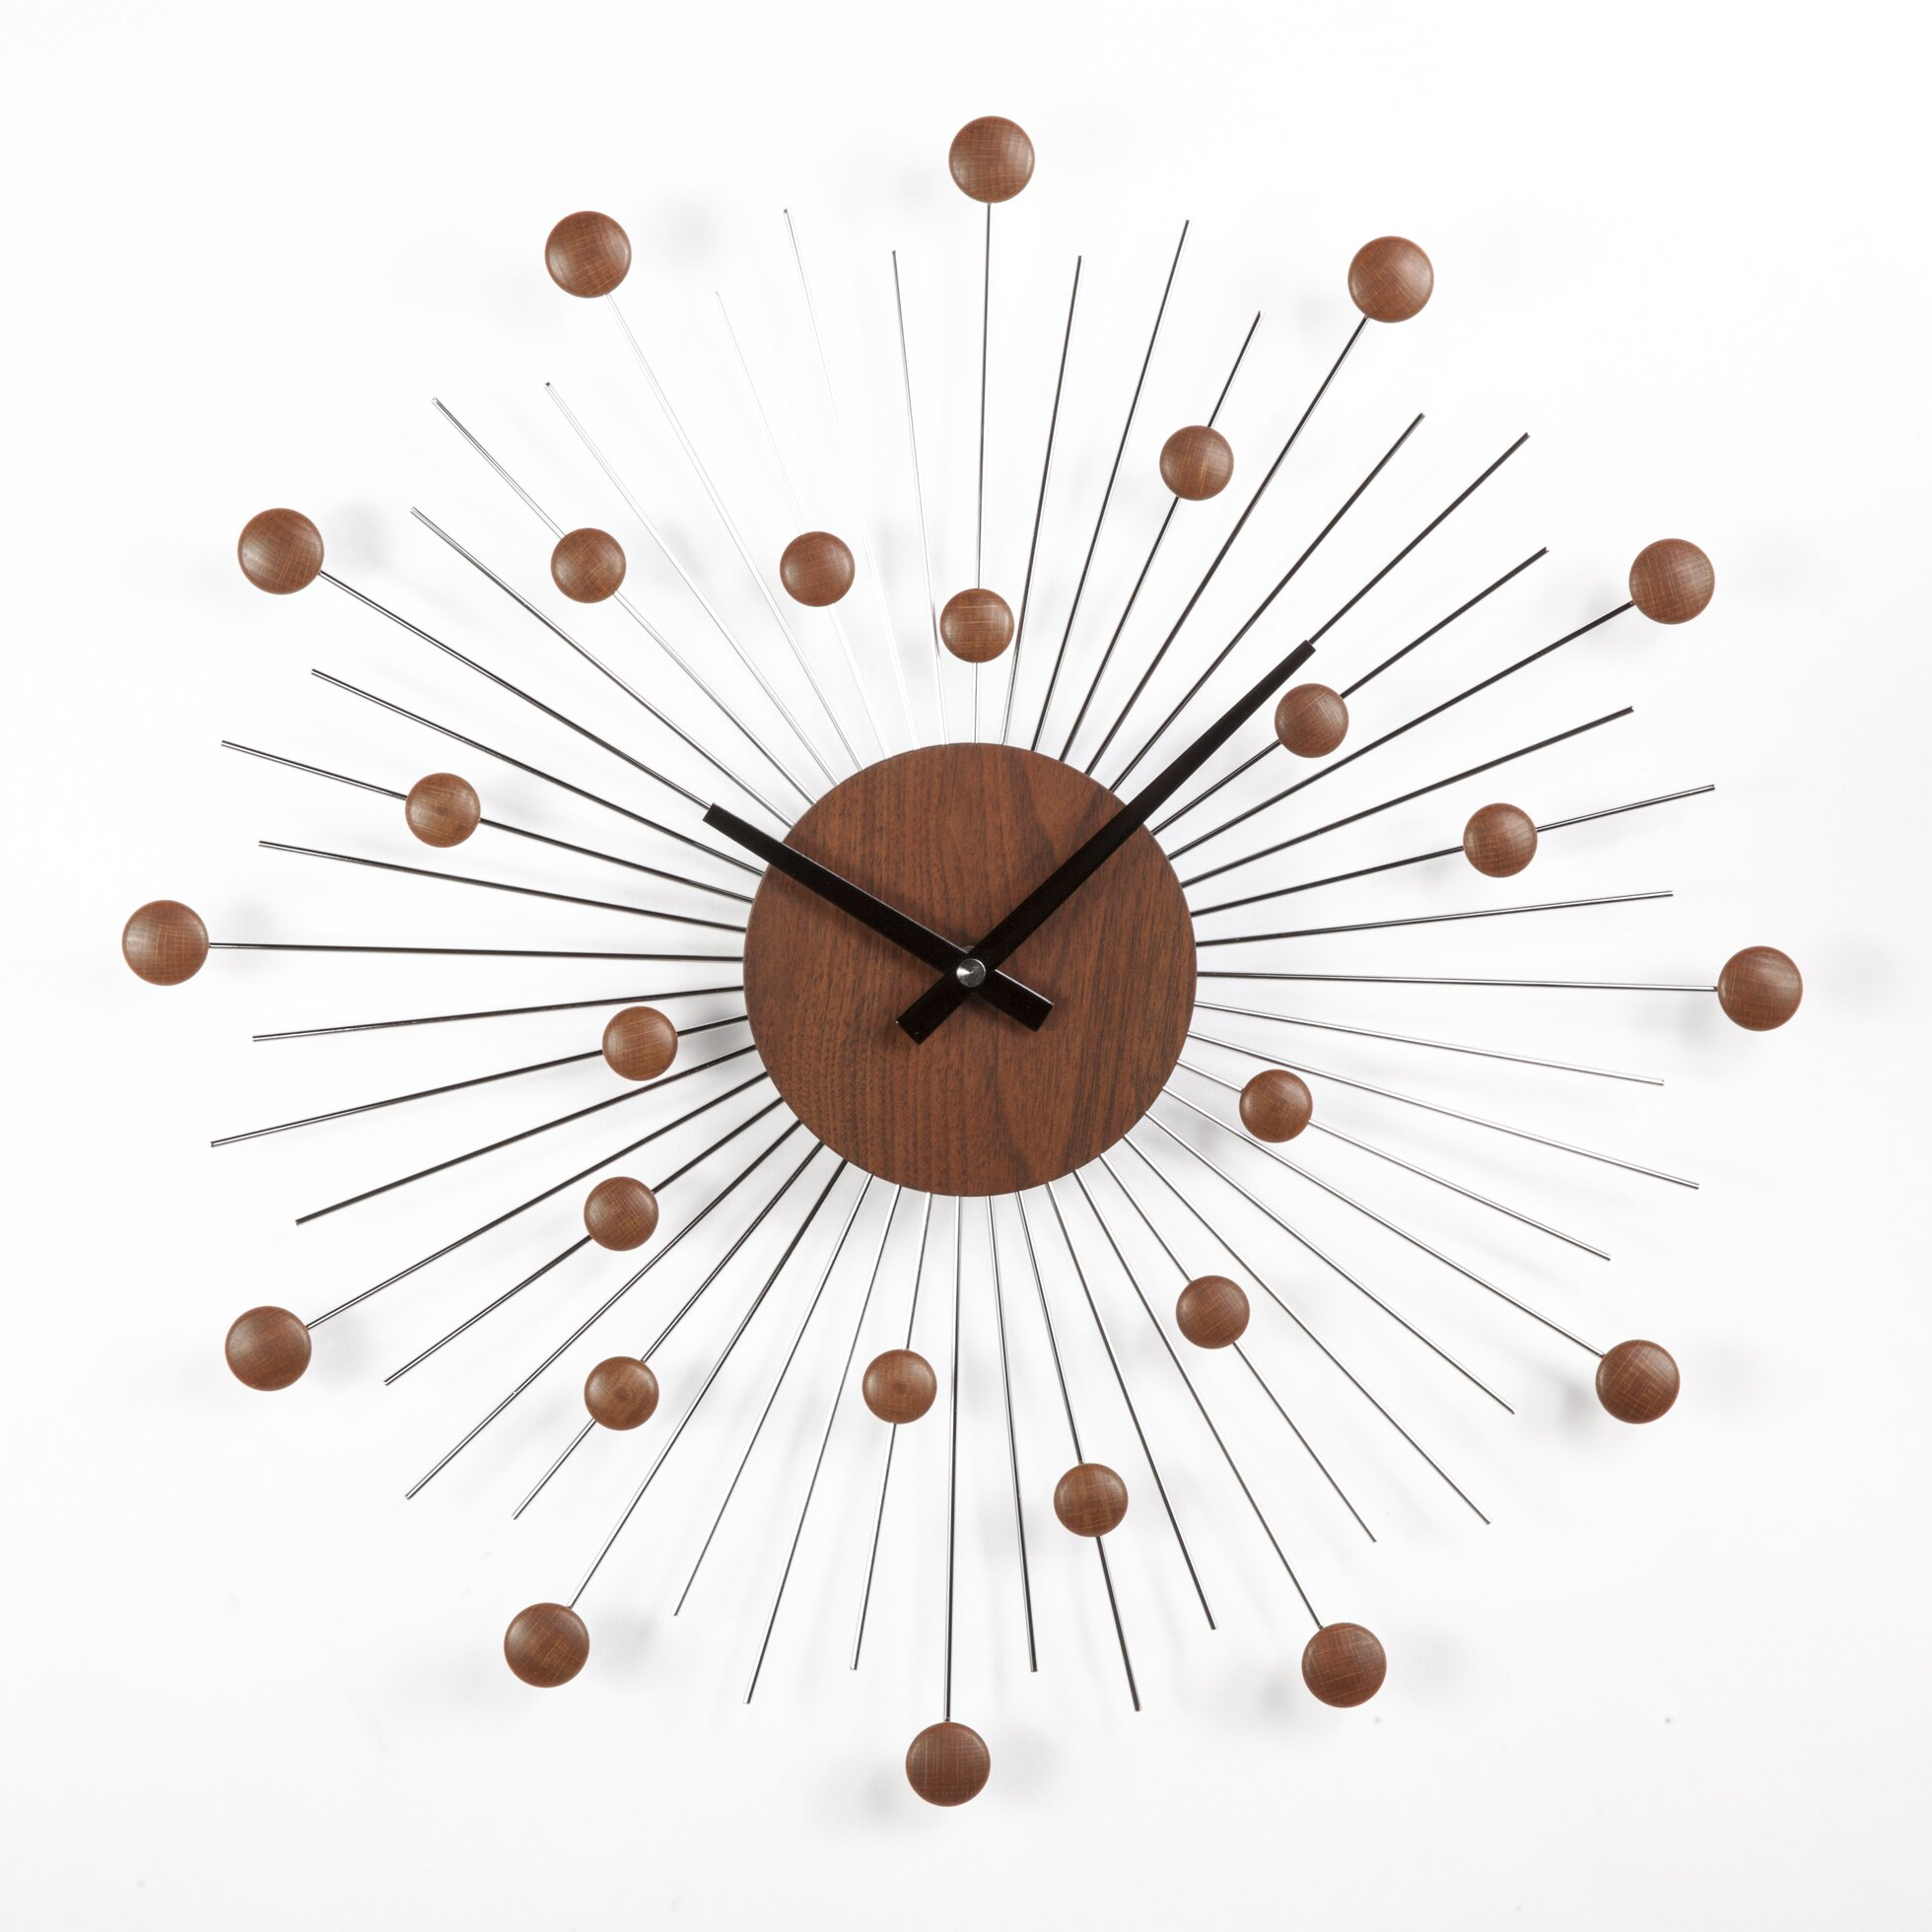 midcentury modern inspired finds from wayfair  dans le lakehouse - star wall clock mid century